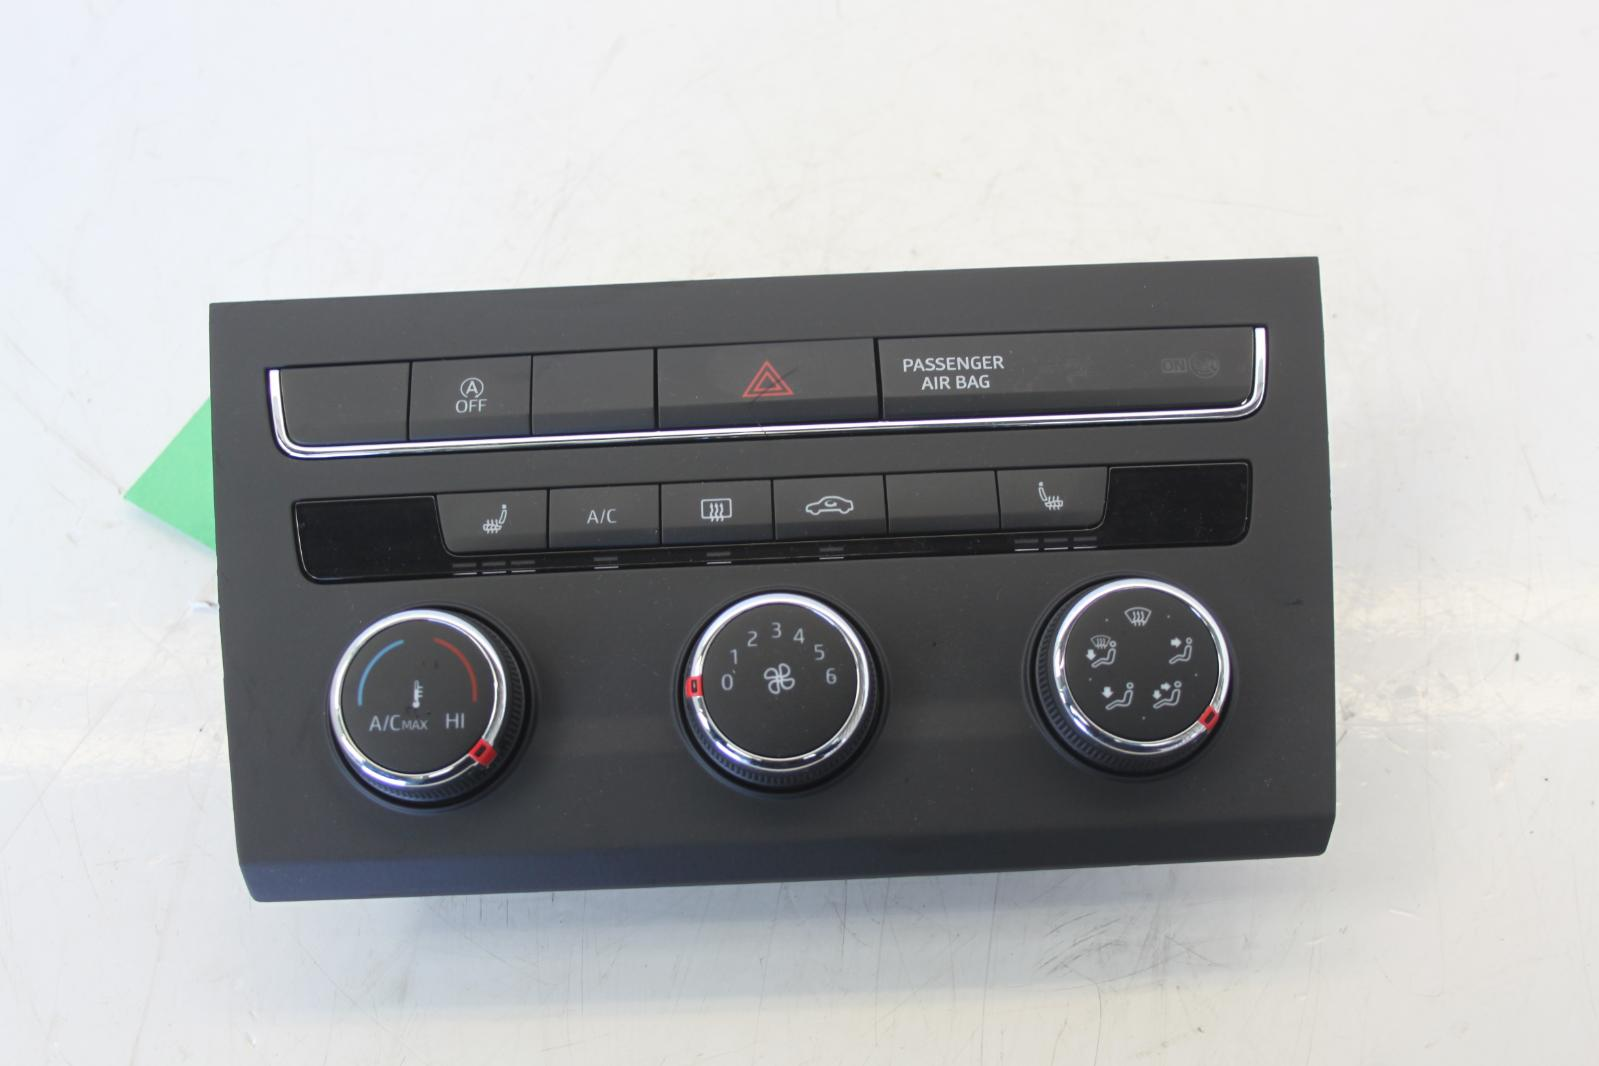 2014 Seat Leon Heater Climate Control Panel With A  C